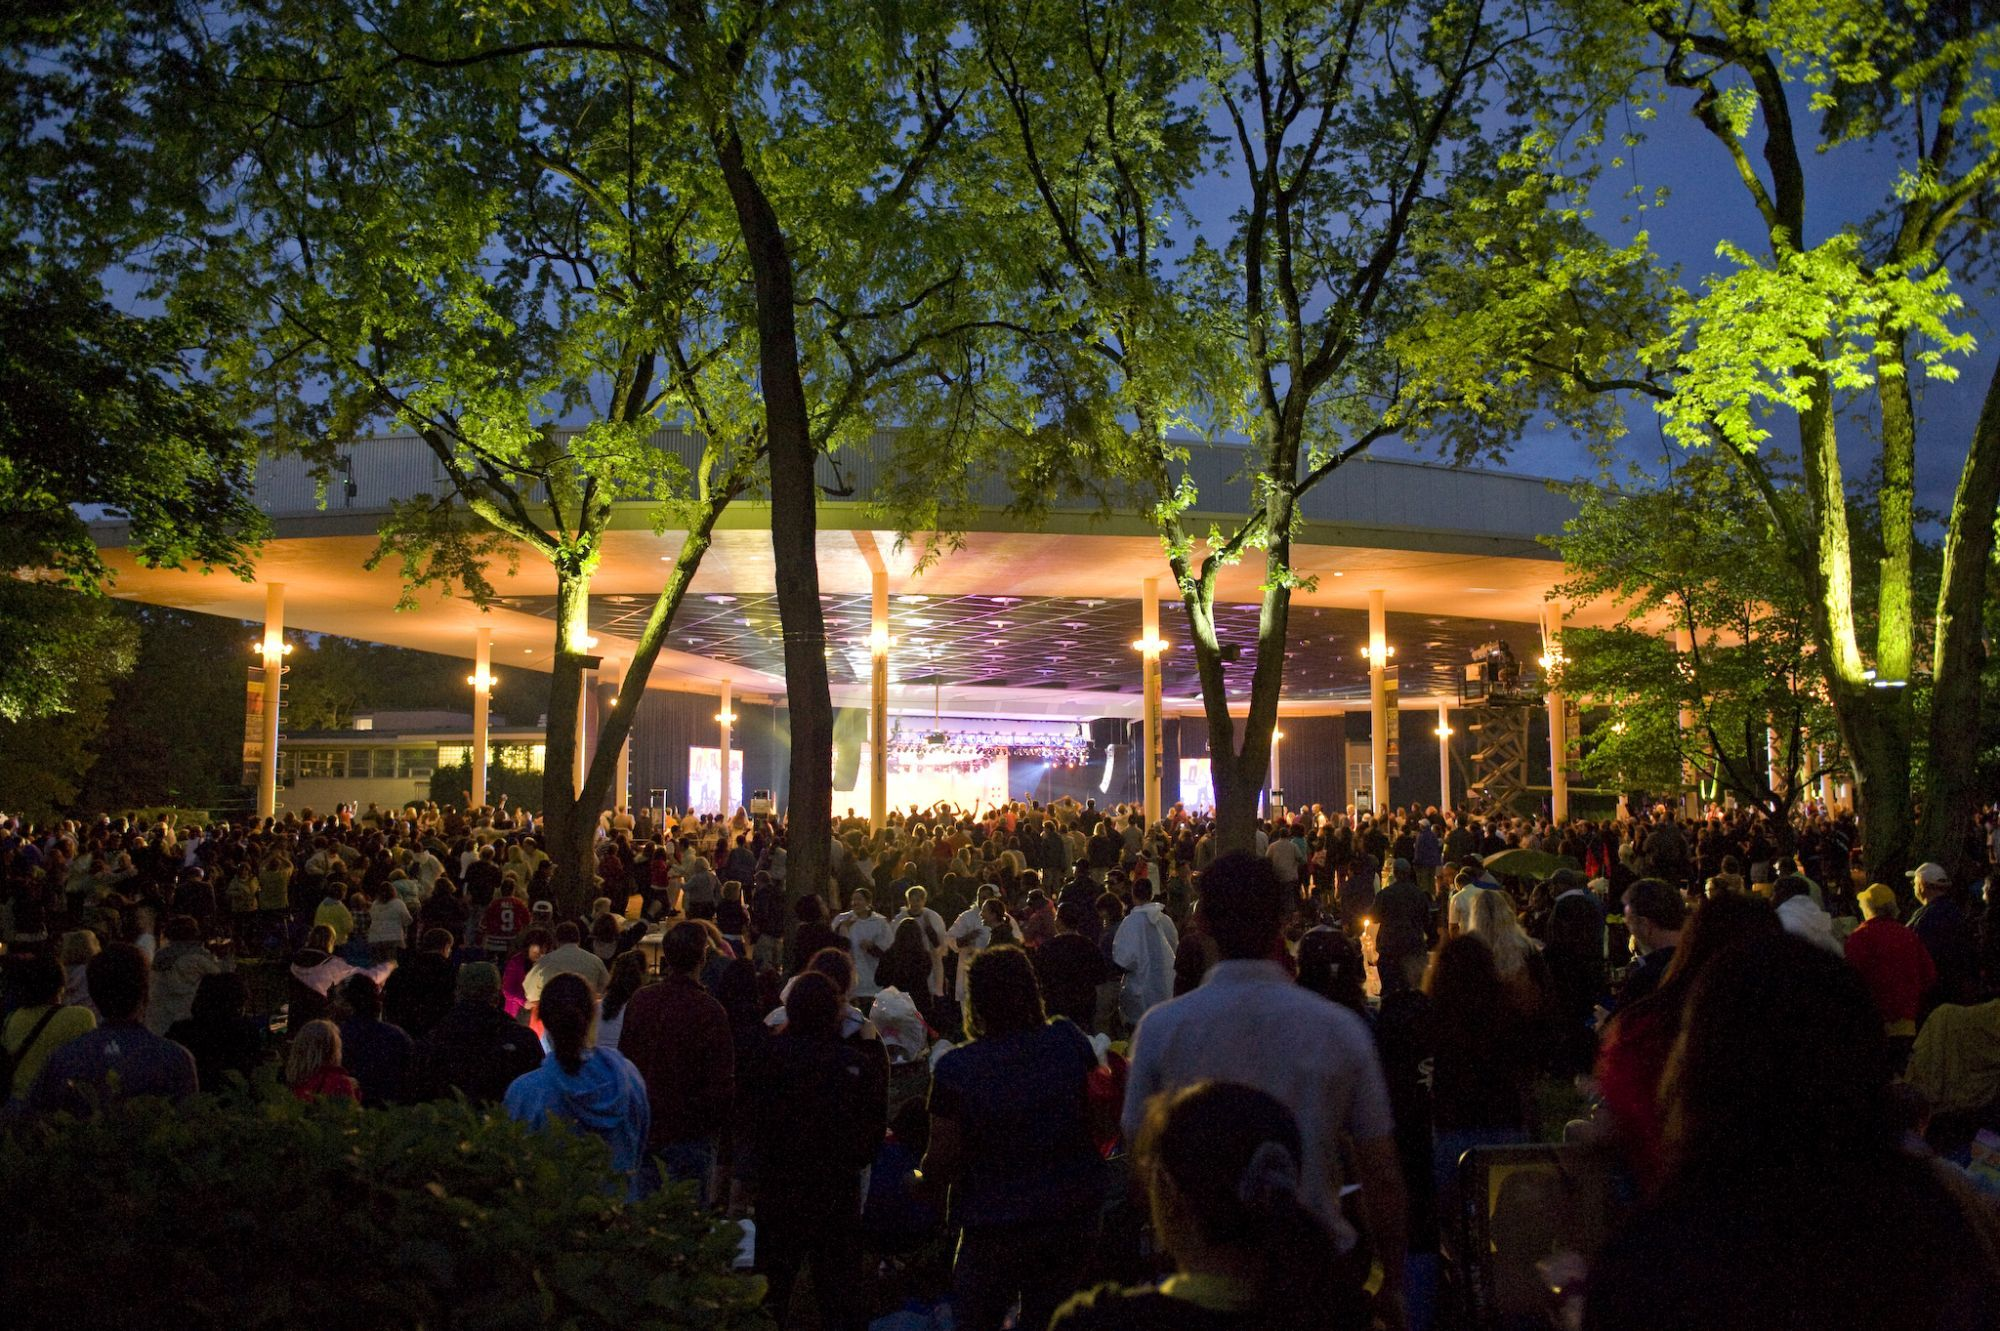 Wether you are sitting in the amphitheater or having a picnic on the lawn Ravinia Festival